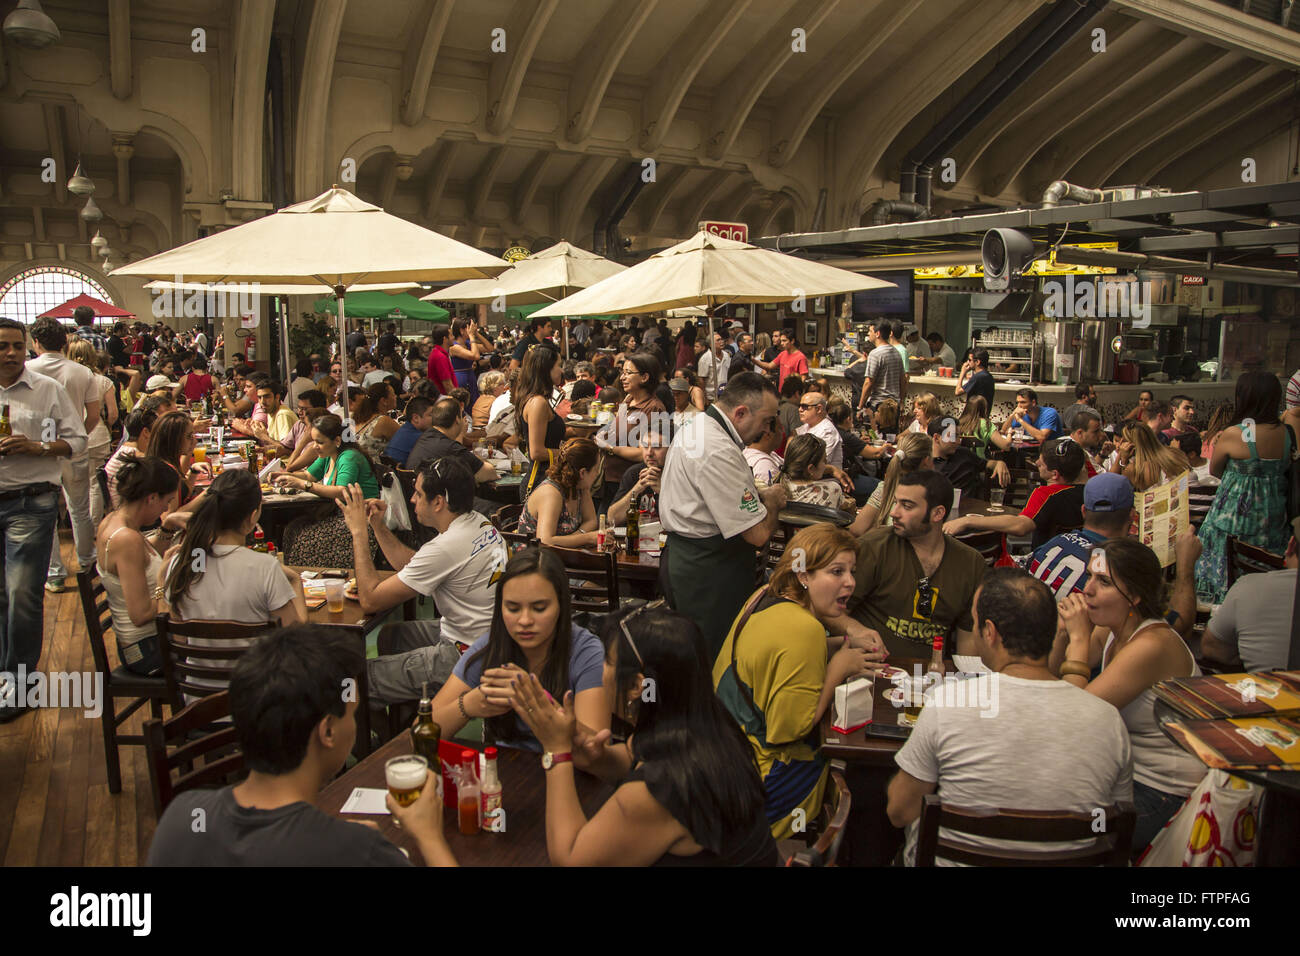 Food court du Marché Municipal de São Paulo - une attraction touristique ouverte en 193 Photo Stock